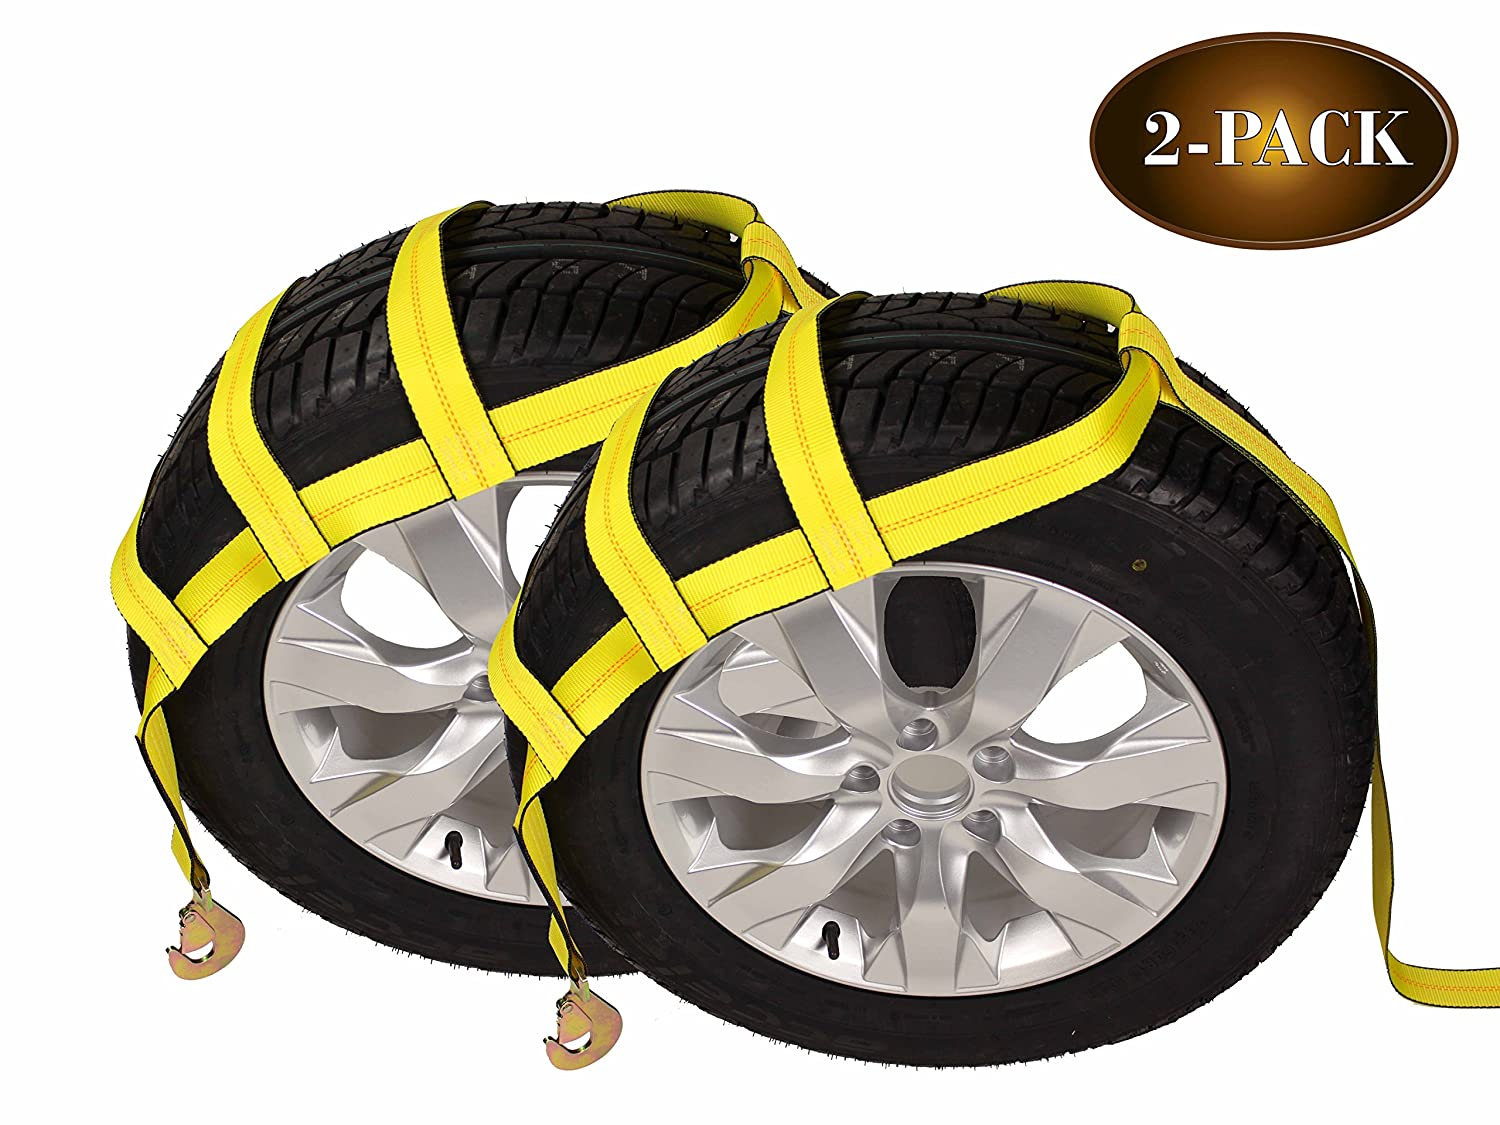 Car Wheel Straps for Auto Hauling DC Cargo Mall Tow Dolly Basket Straps with Twisted Snap Hooks 2-Pack